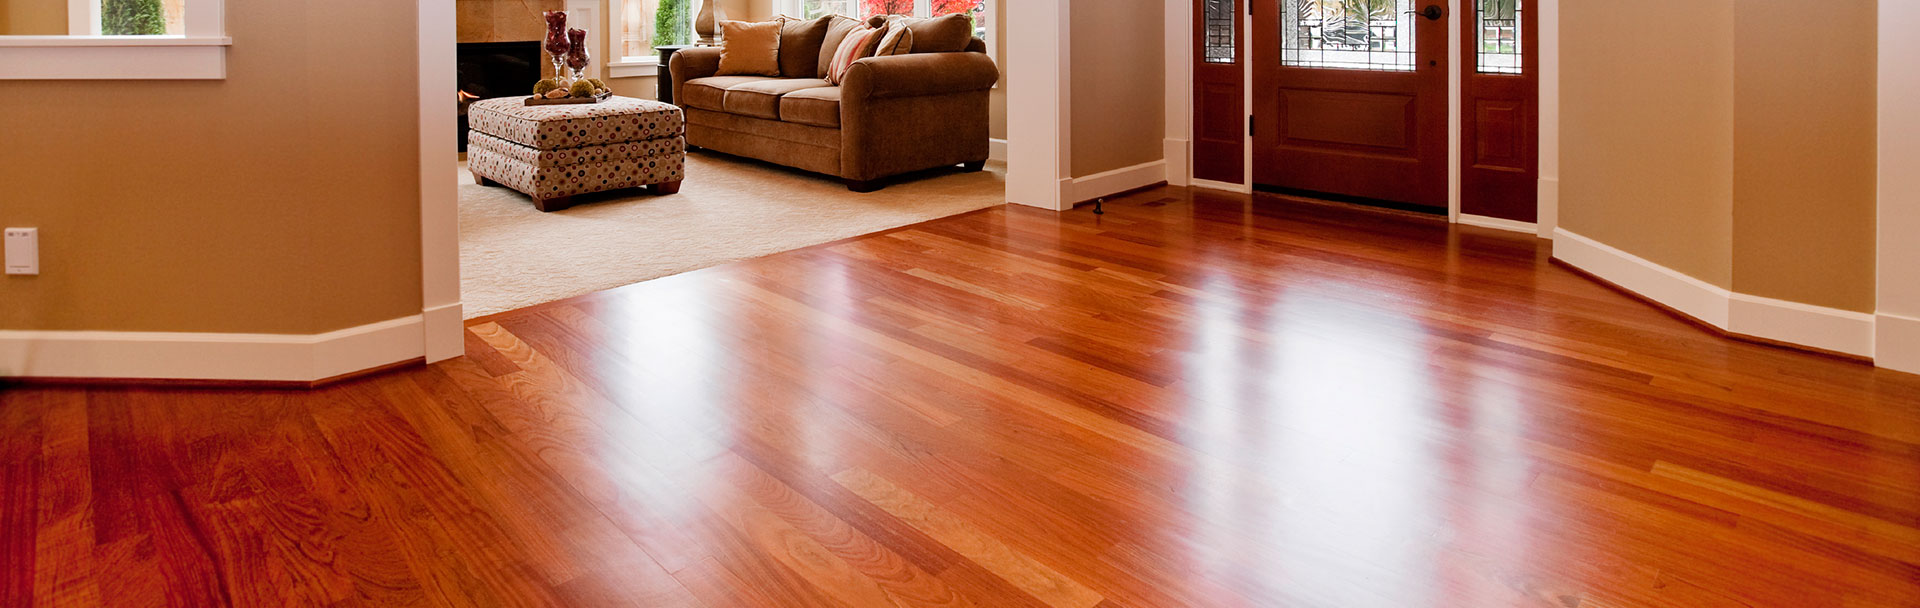 Call Us About Dust Free Hardwood Floor Sanding, Refinishing U0026 Repairs